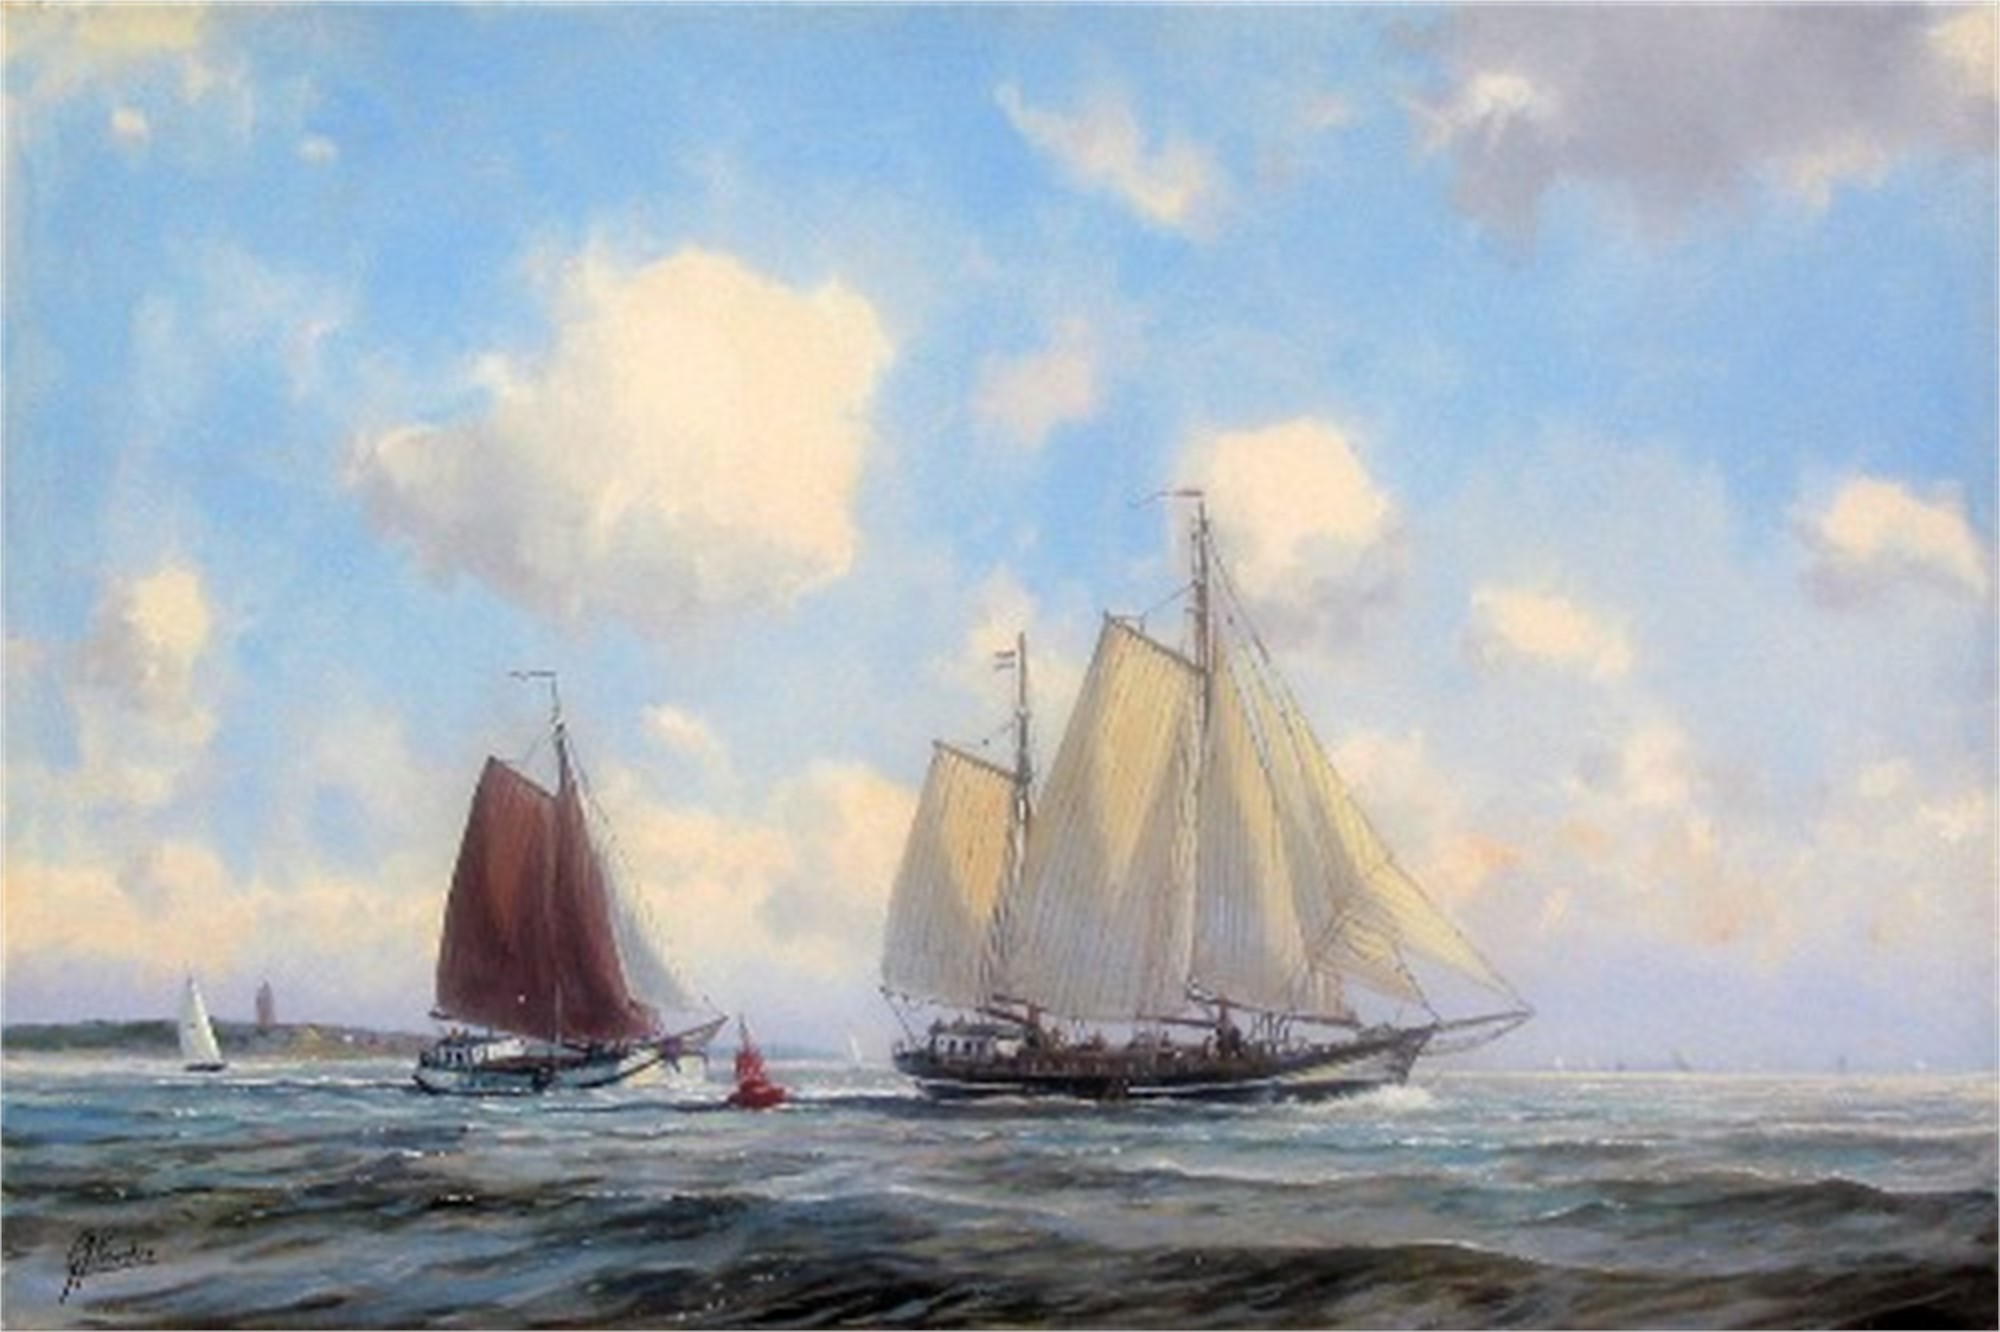 SAILING THE NORTH SEA by VEENSTRA